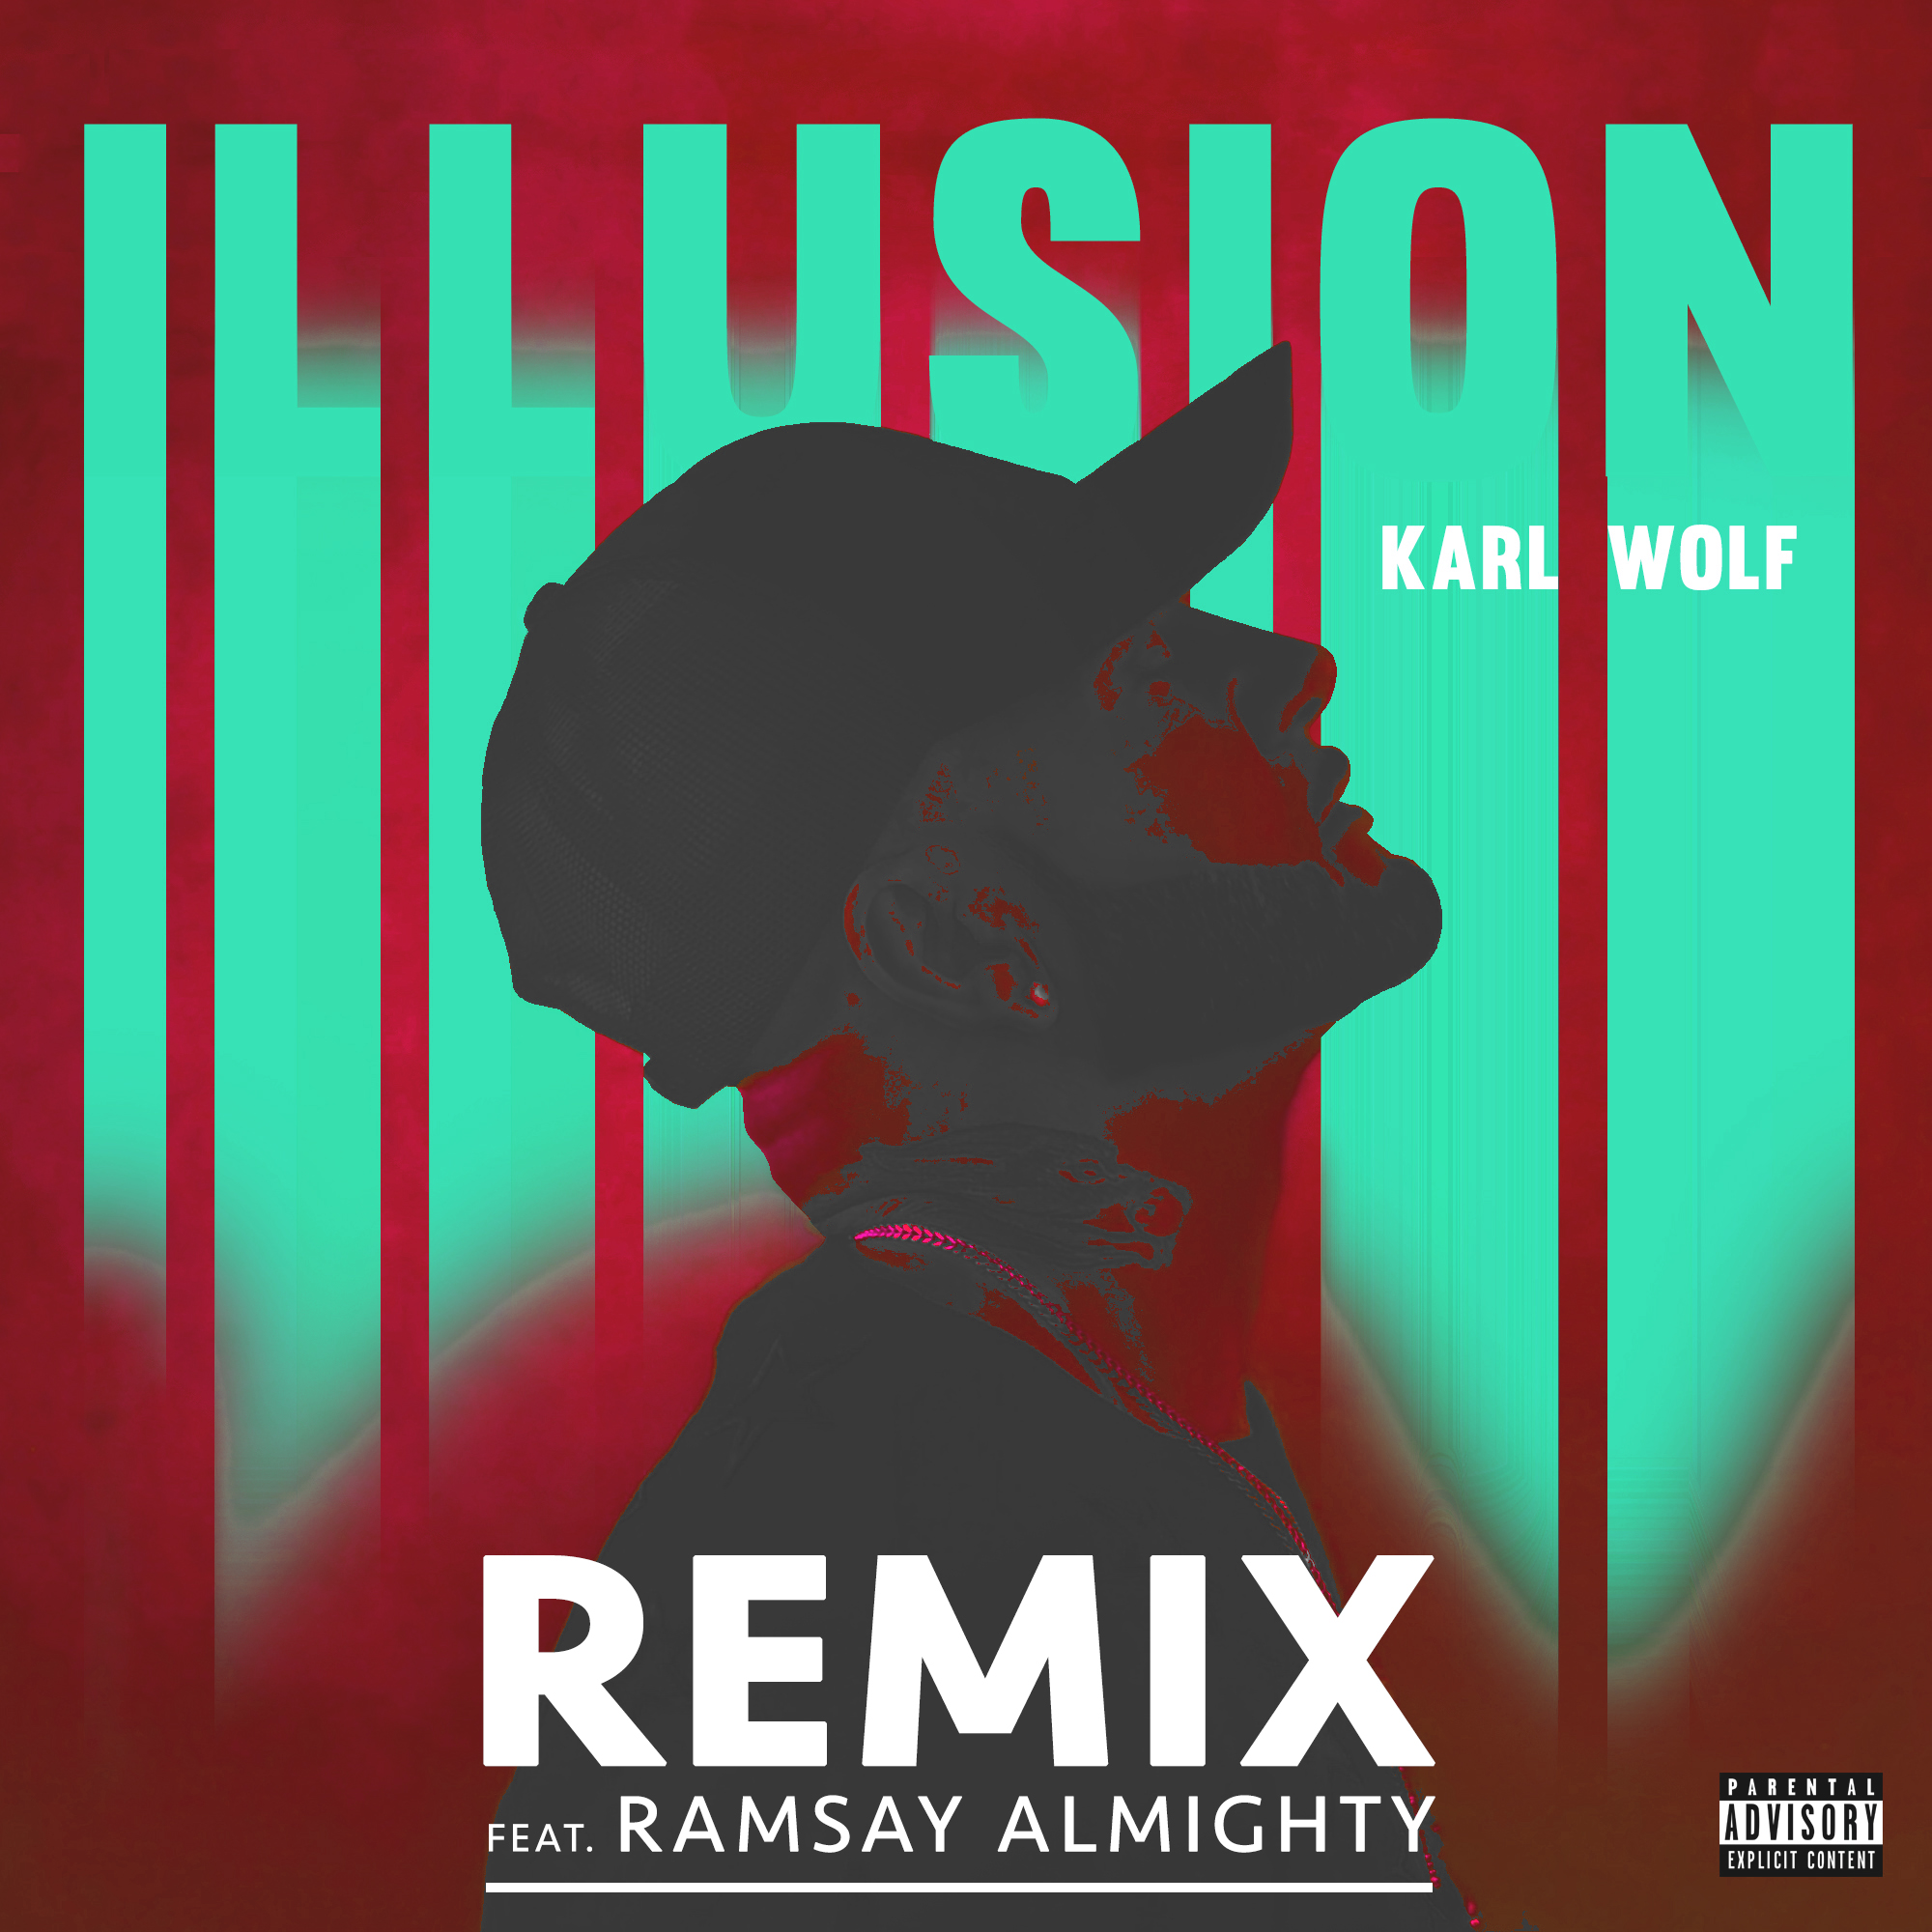 Karl Wolf - Illusion (Remix ft. Ramsay Almighty)